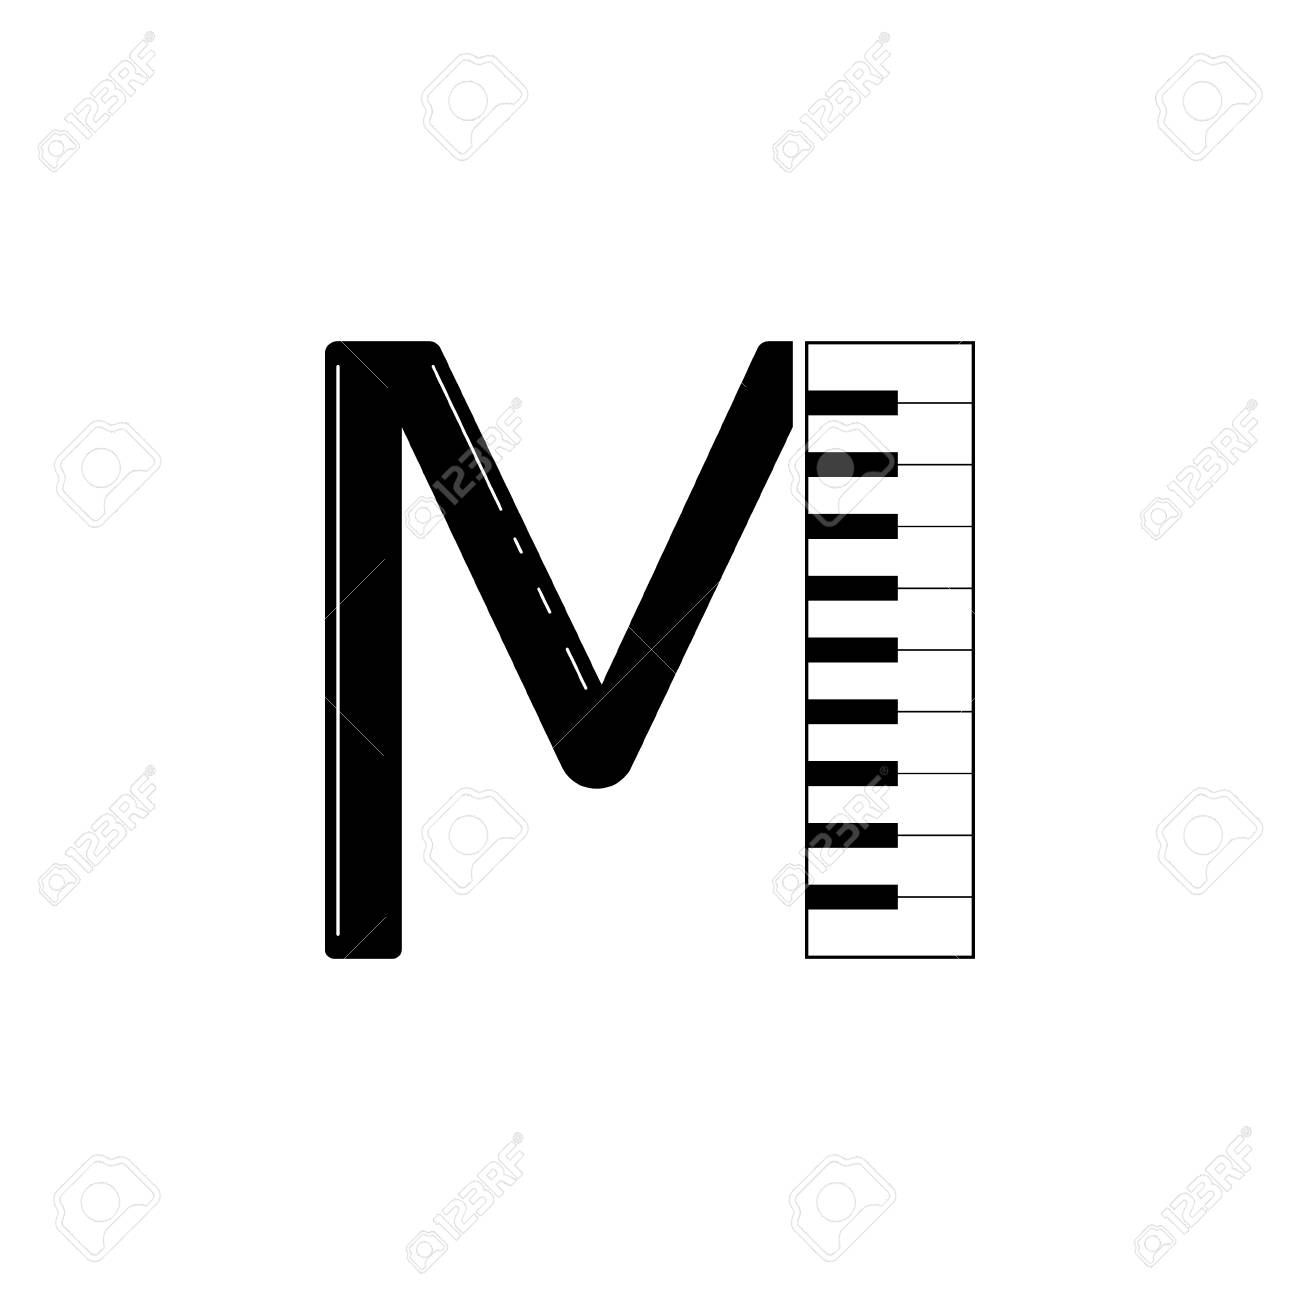 f53c4b83e3e2f Graphic design to the word music. Letter M initialization with piano  design. Stock Vector